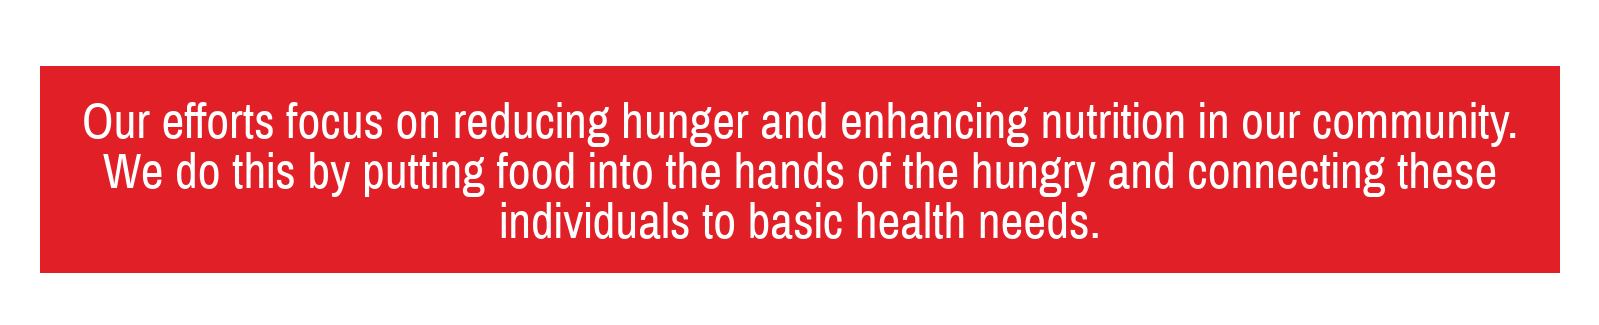 Our efforts focus on reducing hunger and enhancing nutrition in our community. We do this by putting food into the hands of the hungry and connecting these individuals to basic health needs.